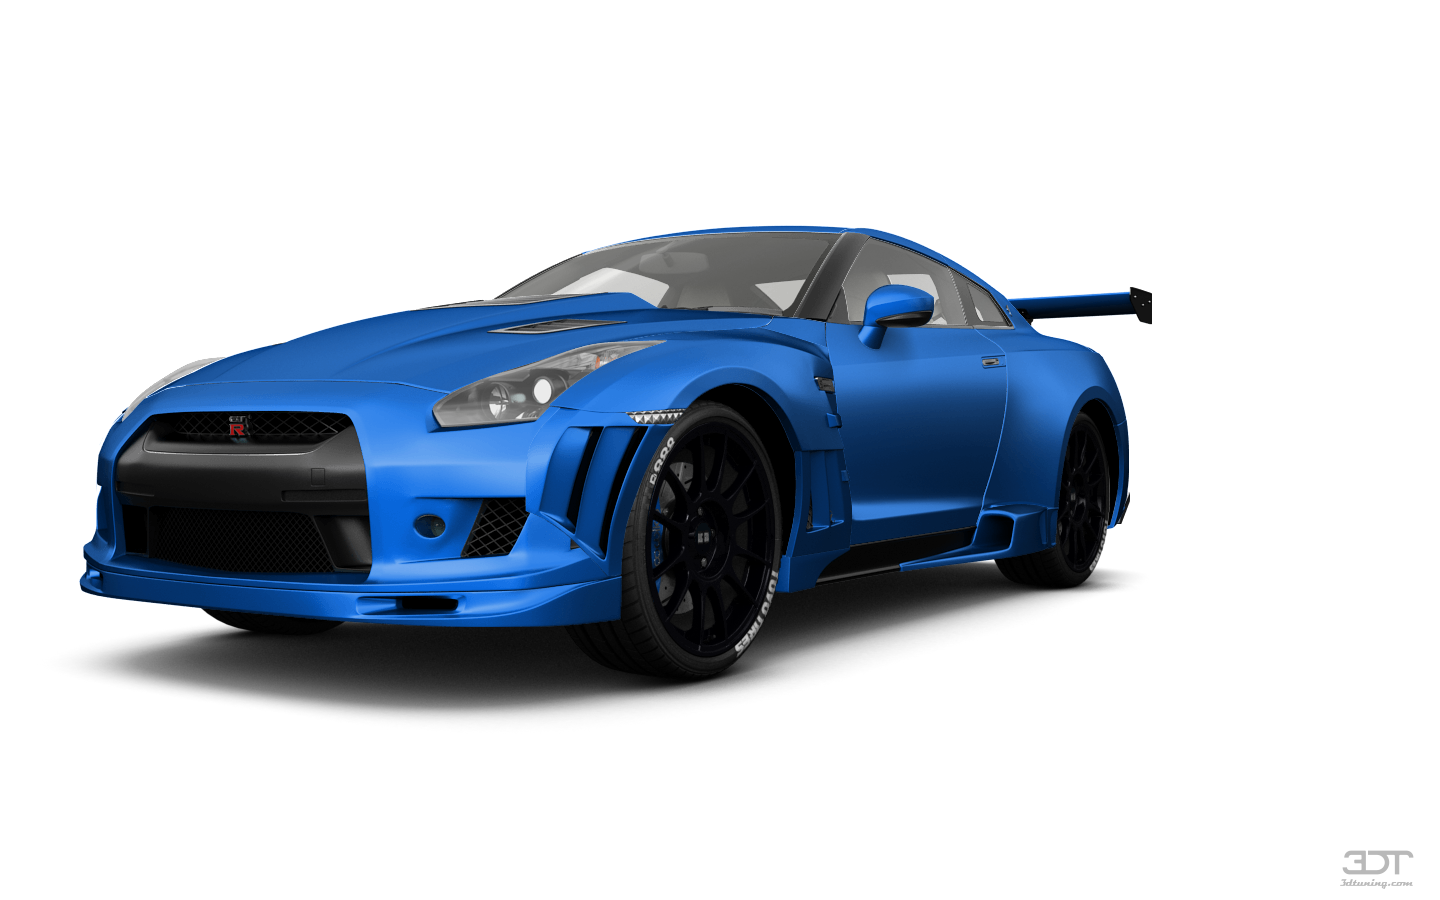 Nissan GT-R 2 Door Coupe 2010 tuning